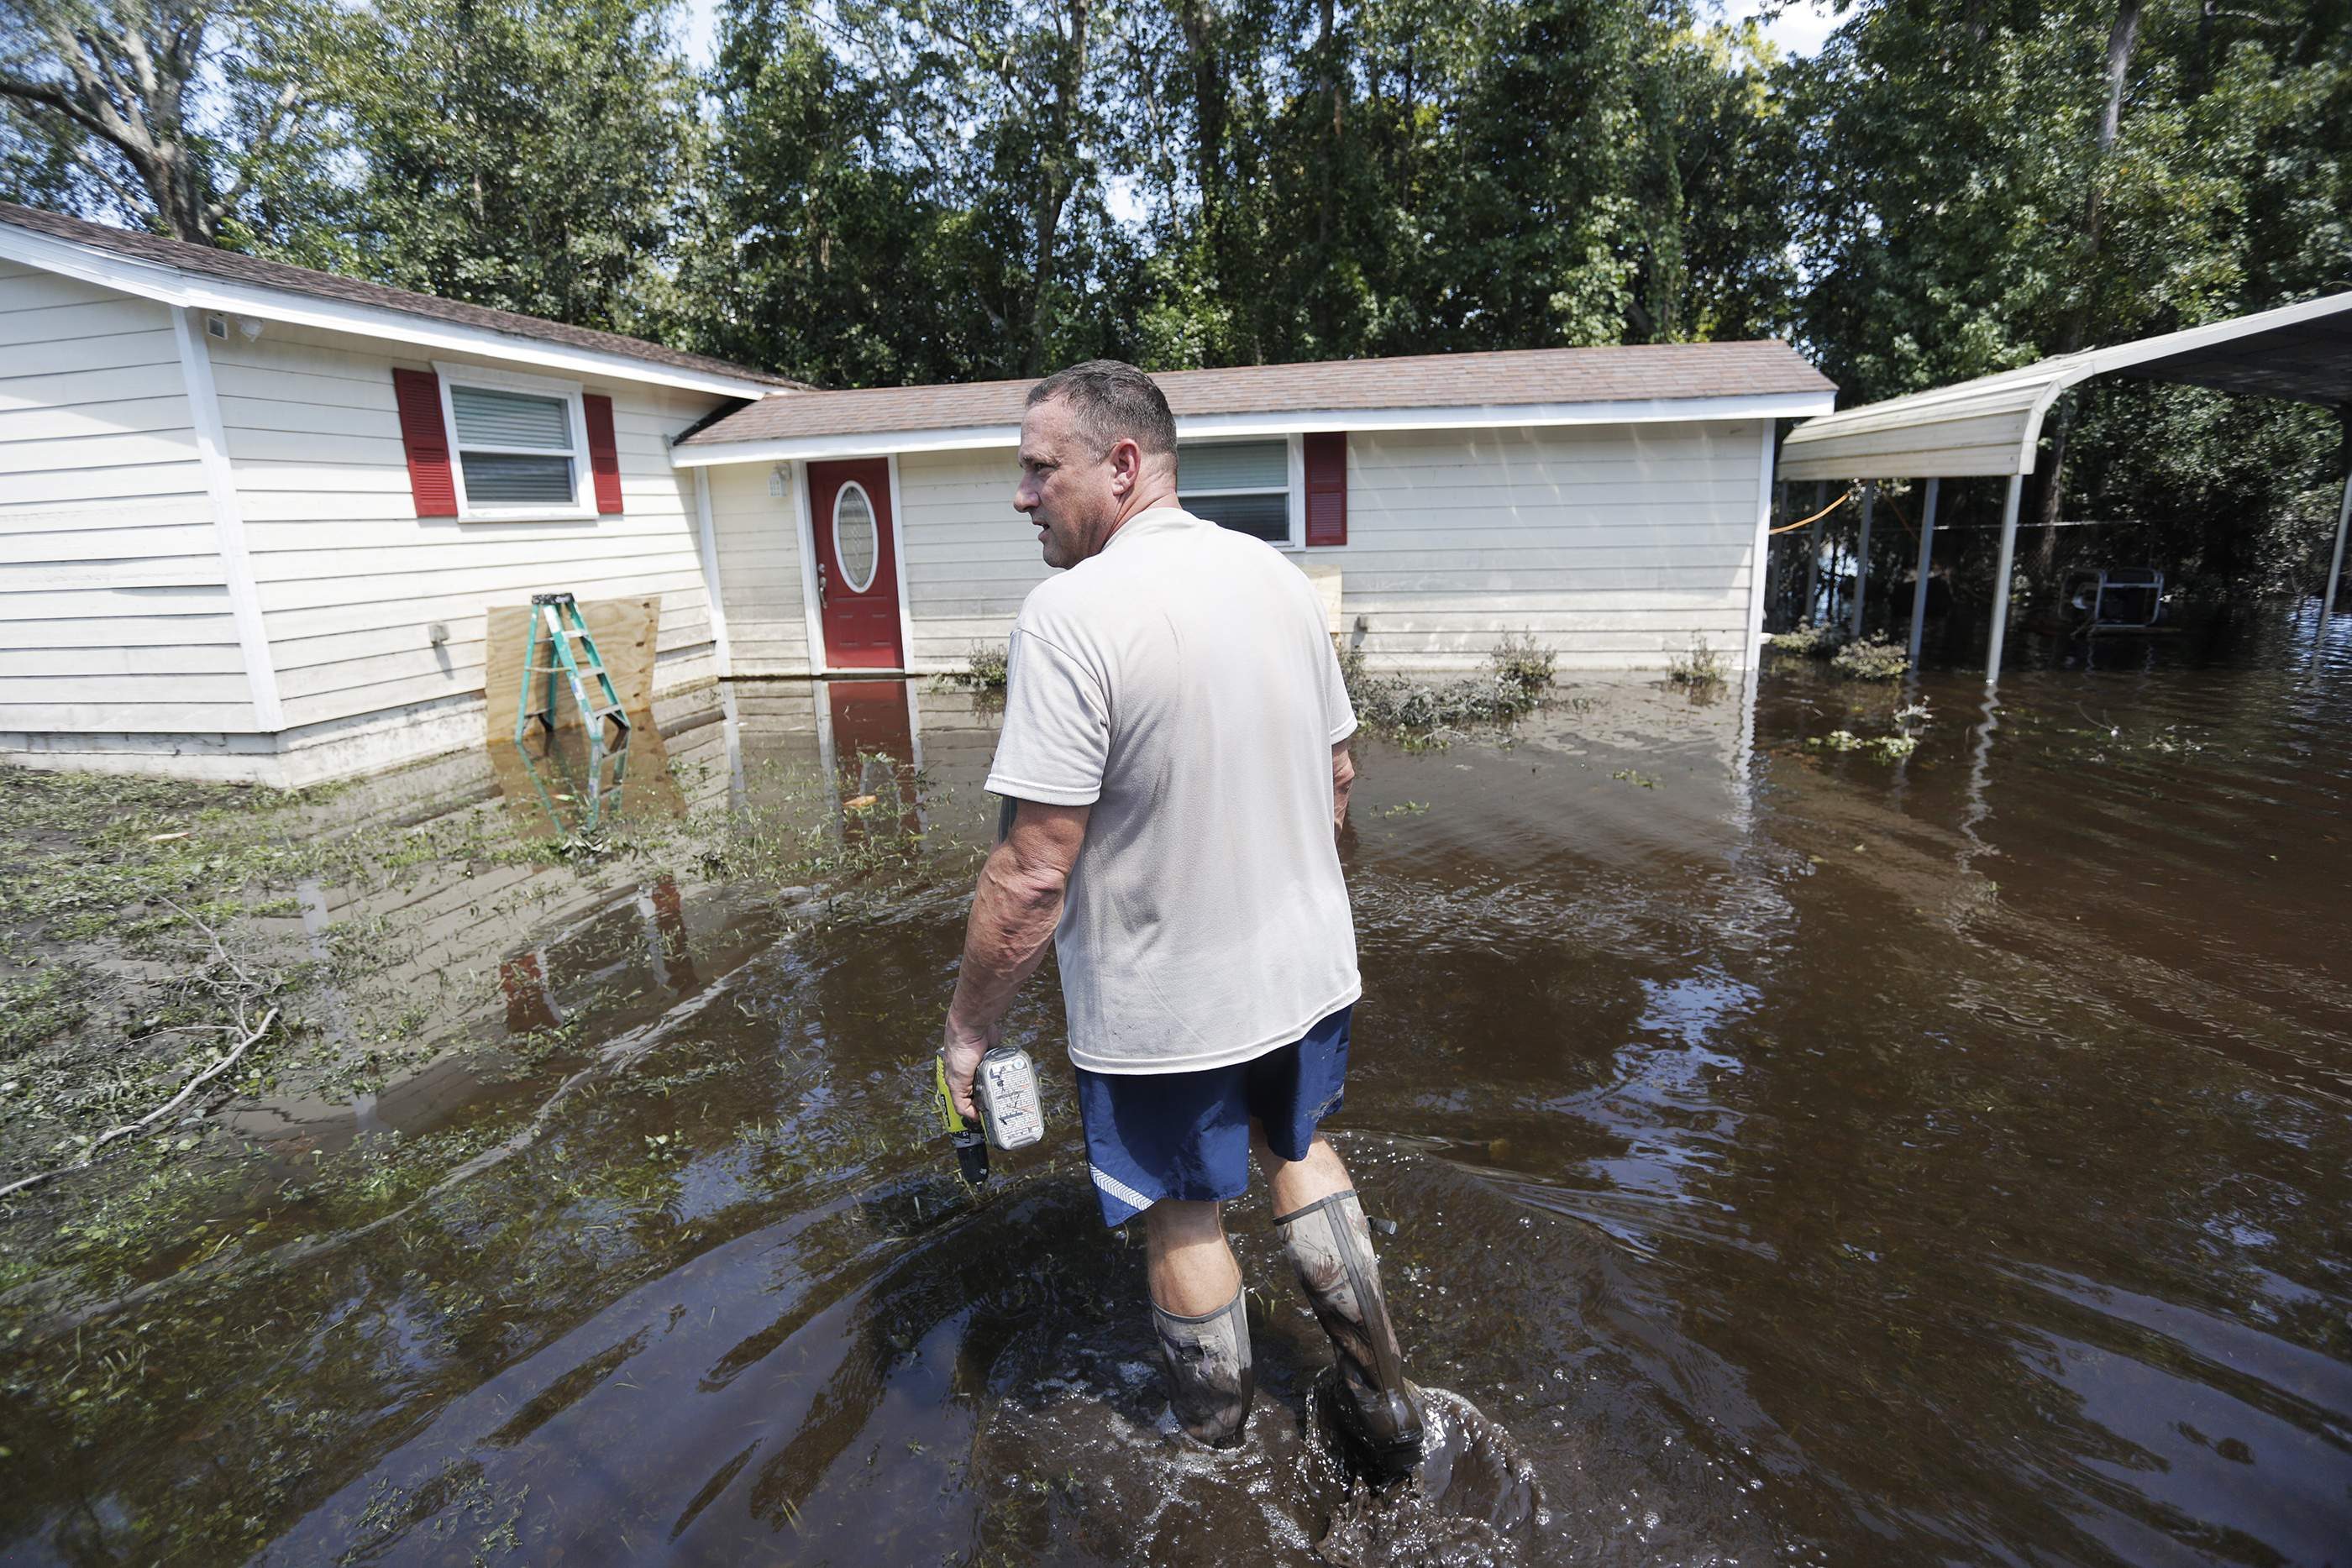 calm before the storm: flood insurance could get messy over